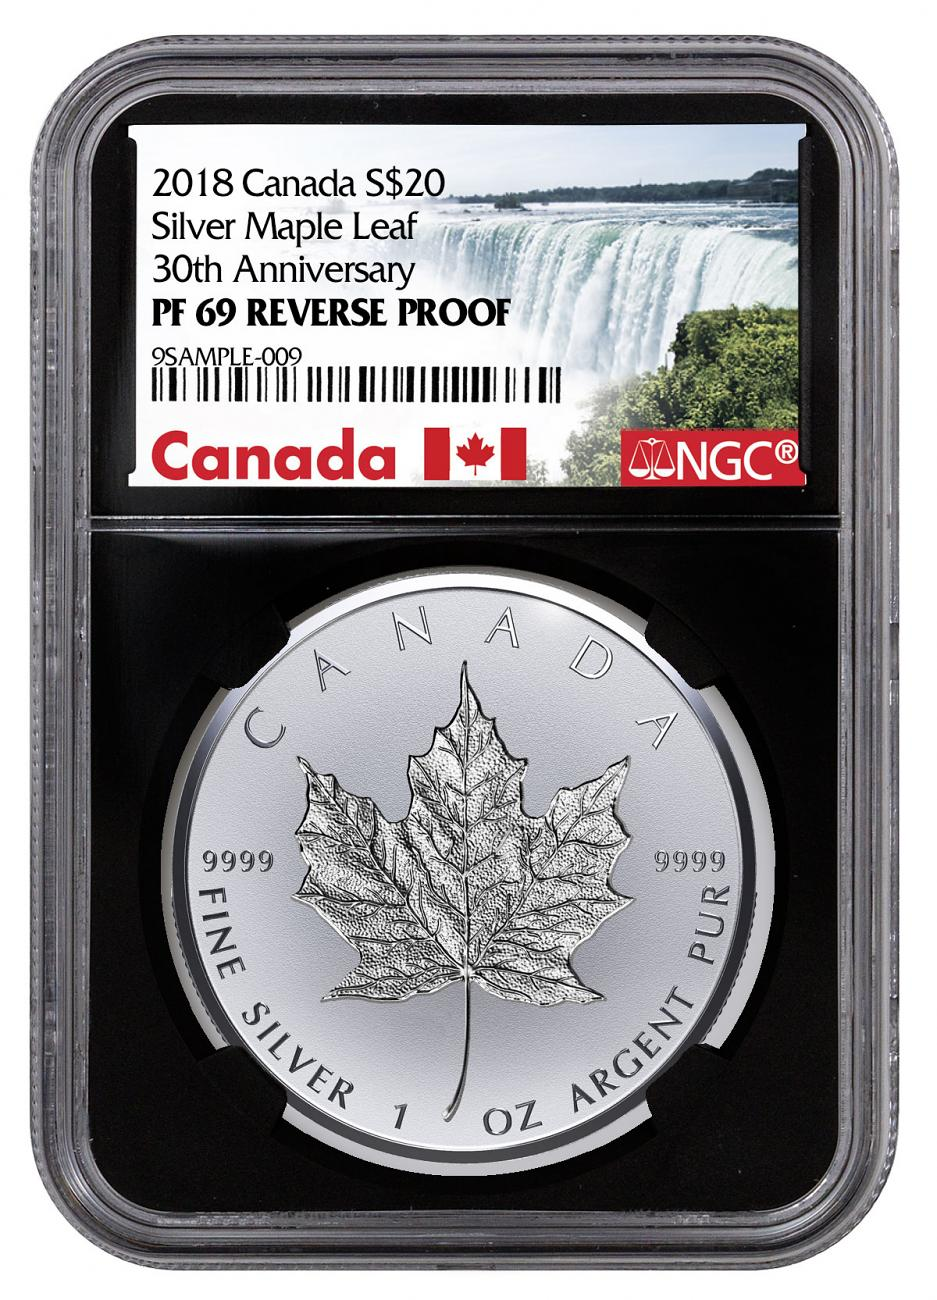 2018 Canada 1 oz Silver Maple Leaf - Incuse Reverse Proof $20 Coin NGC PF69 Black Core Holder Exclusive Canada Label